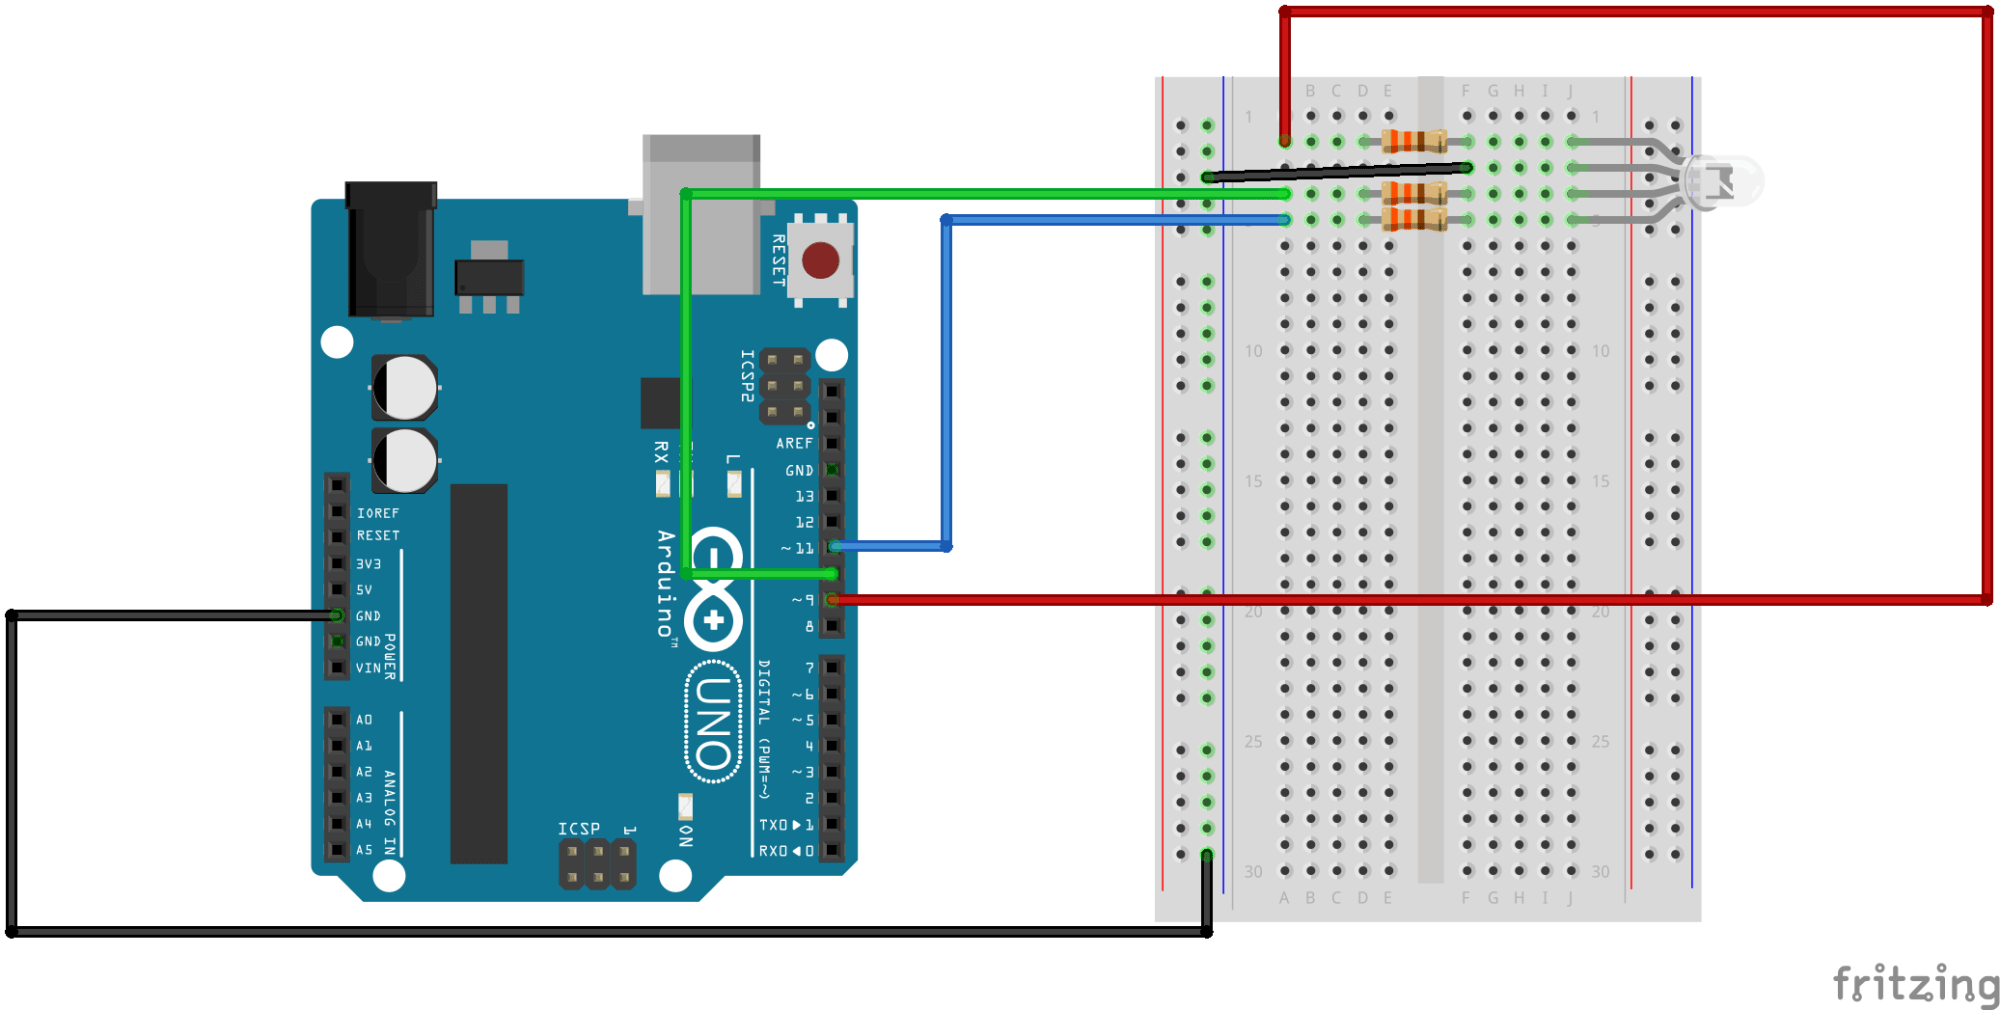 hight resolution of sik experiment guide for arduino v3 2 learn sparkfun com led matrix wiring arduino led wiring arduino